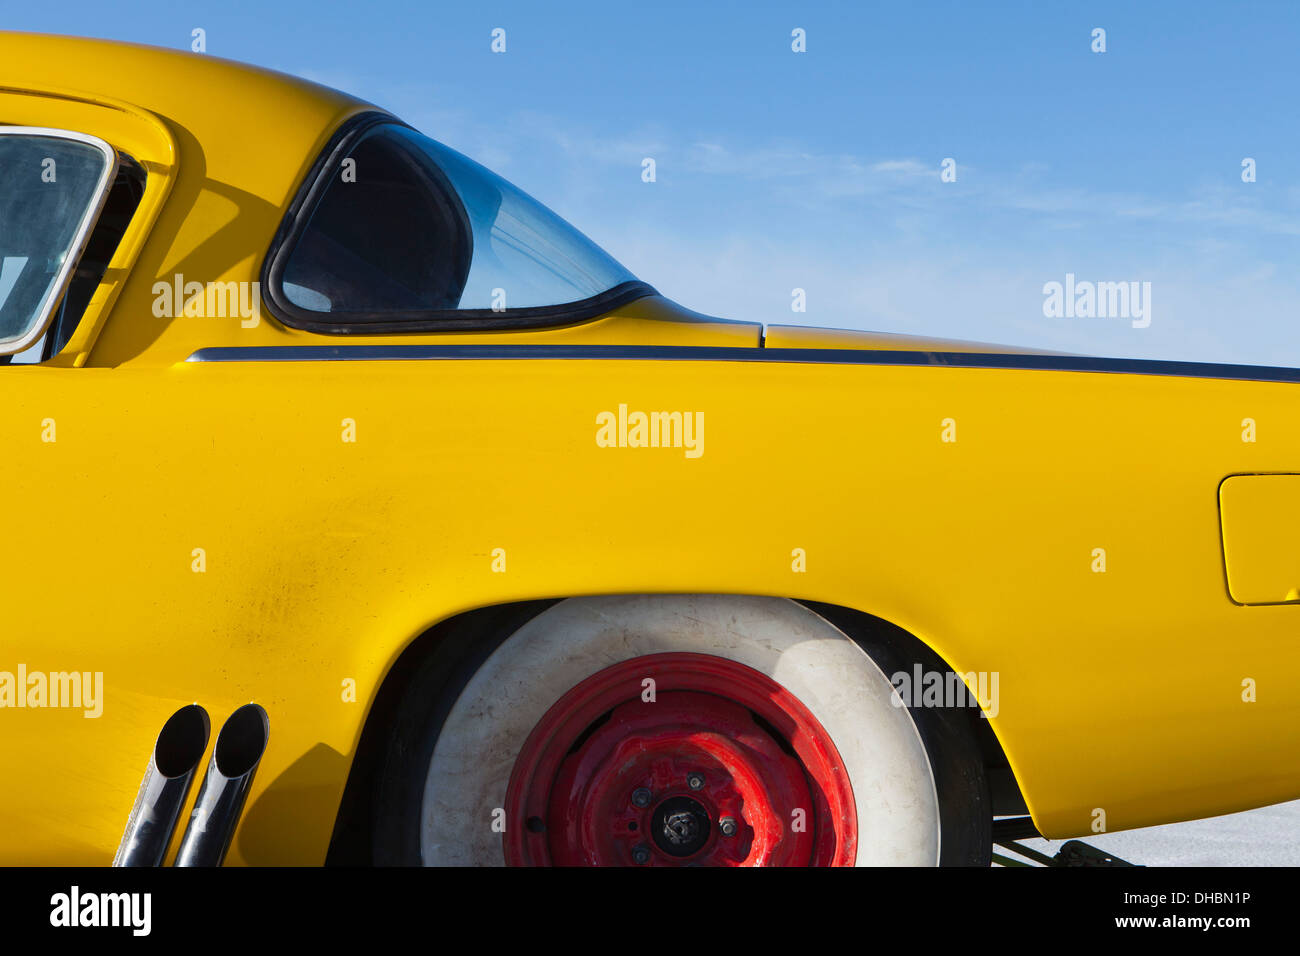 A vintage Studebaker race car, rear section, on Bonneville Salt Flats race track, during Speed Week. - Stock Image